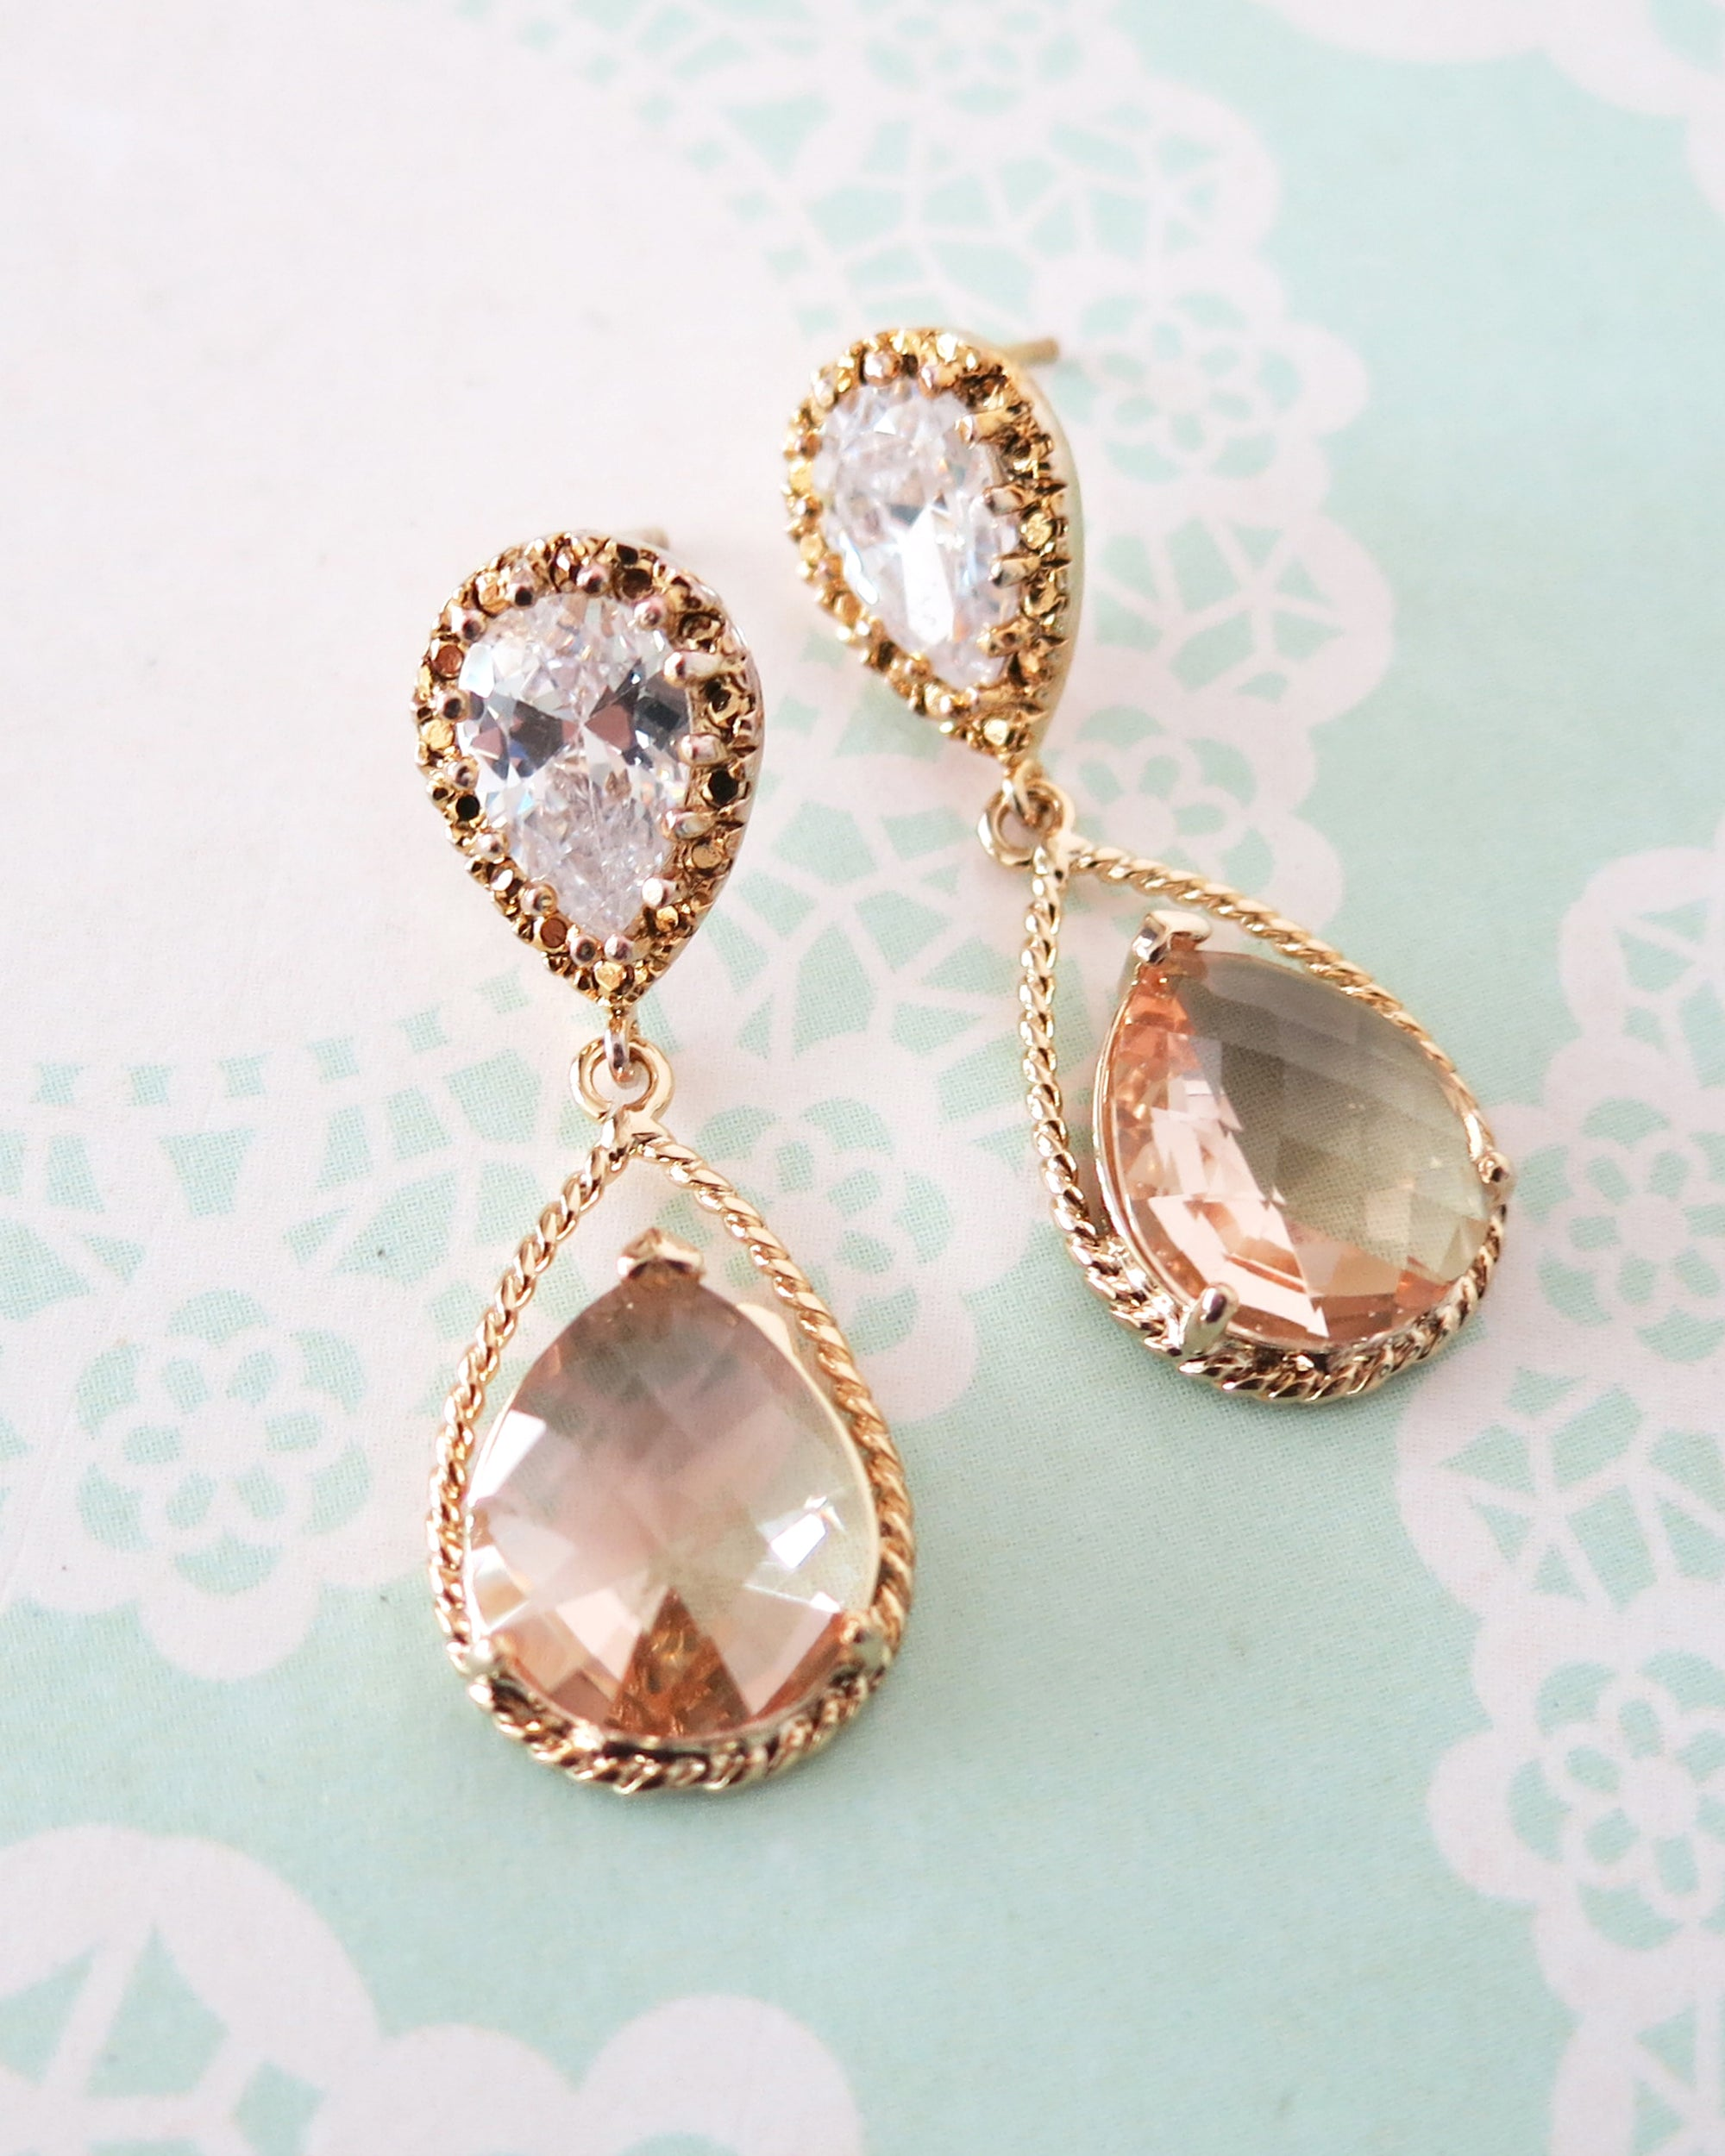 Gold Champagne Teardrop Earrings & Necklace | Bridesmaid Jewerly Gifts